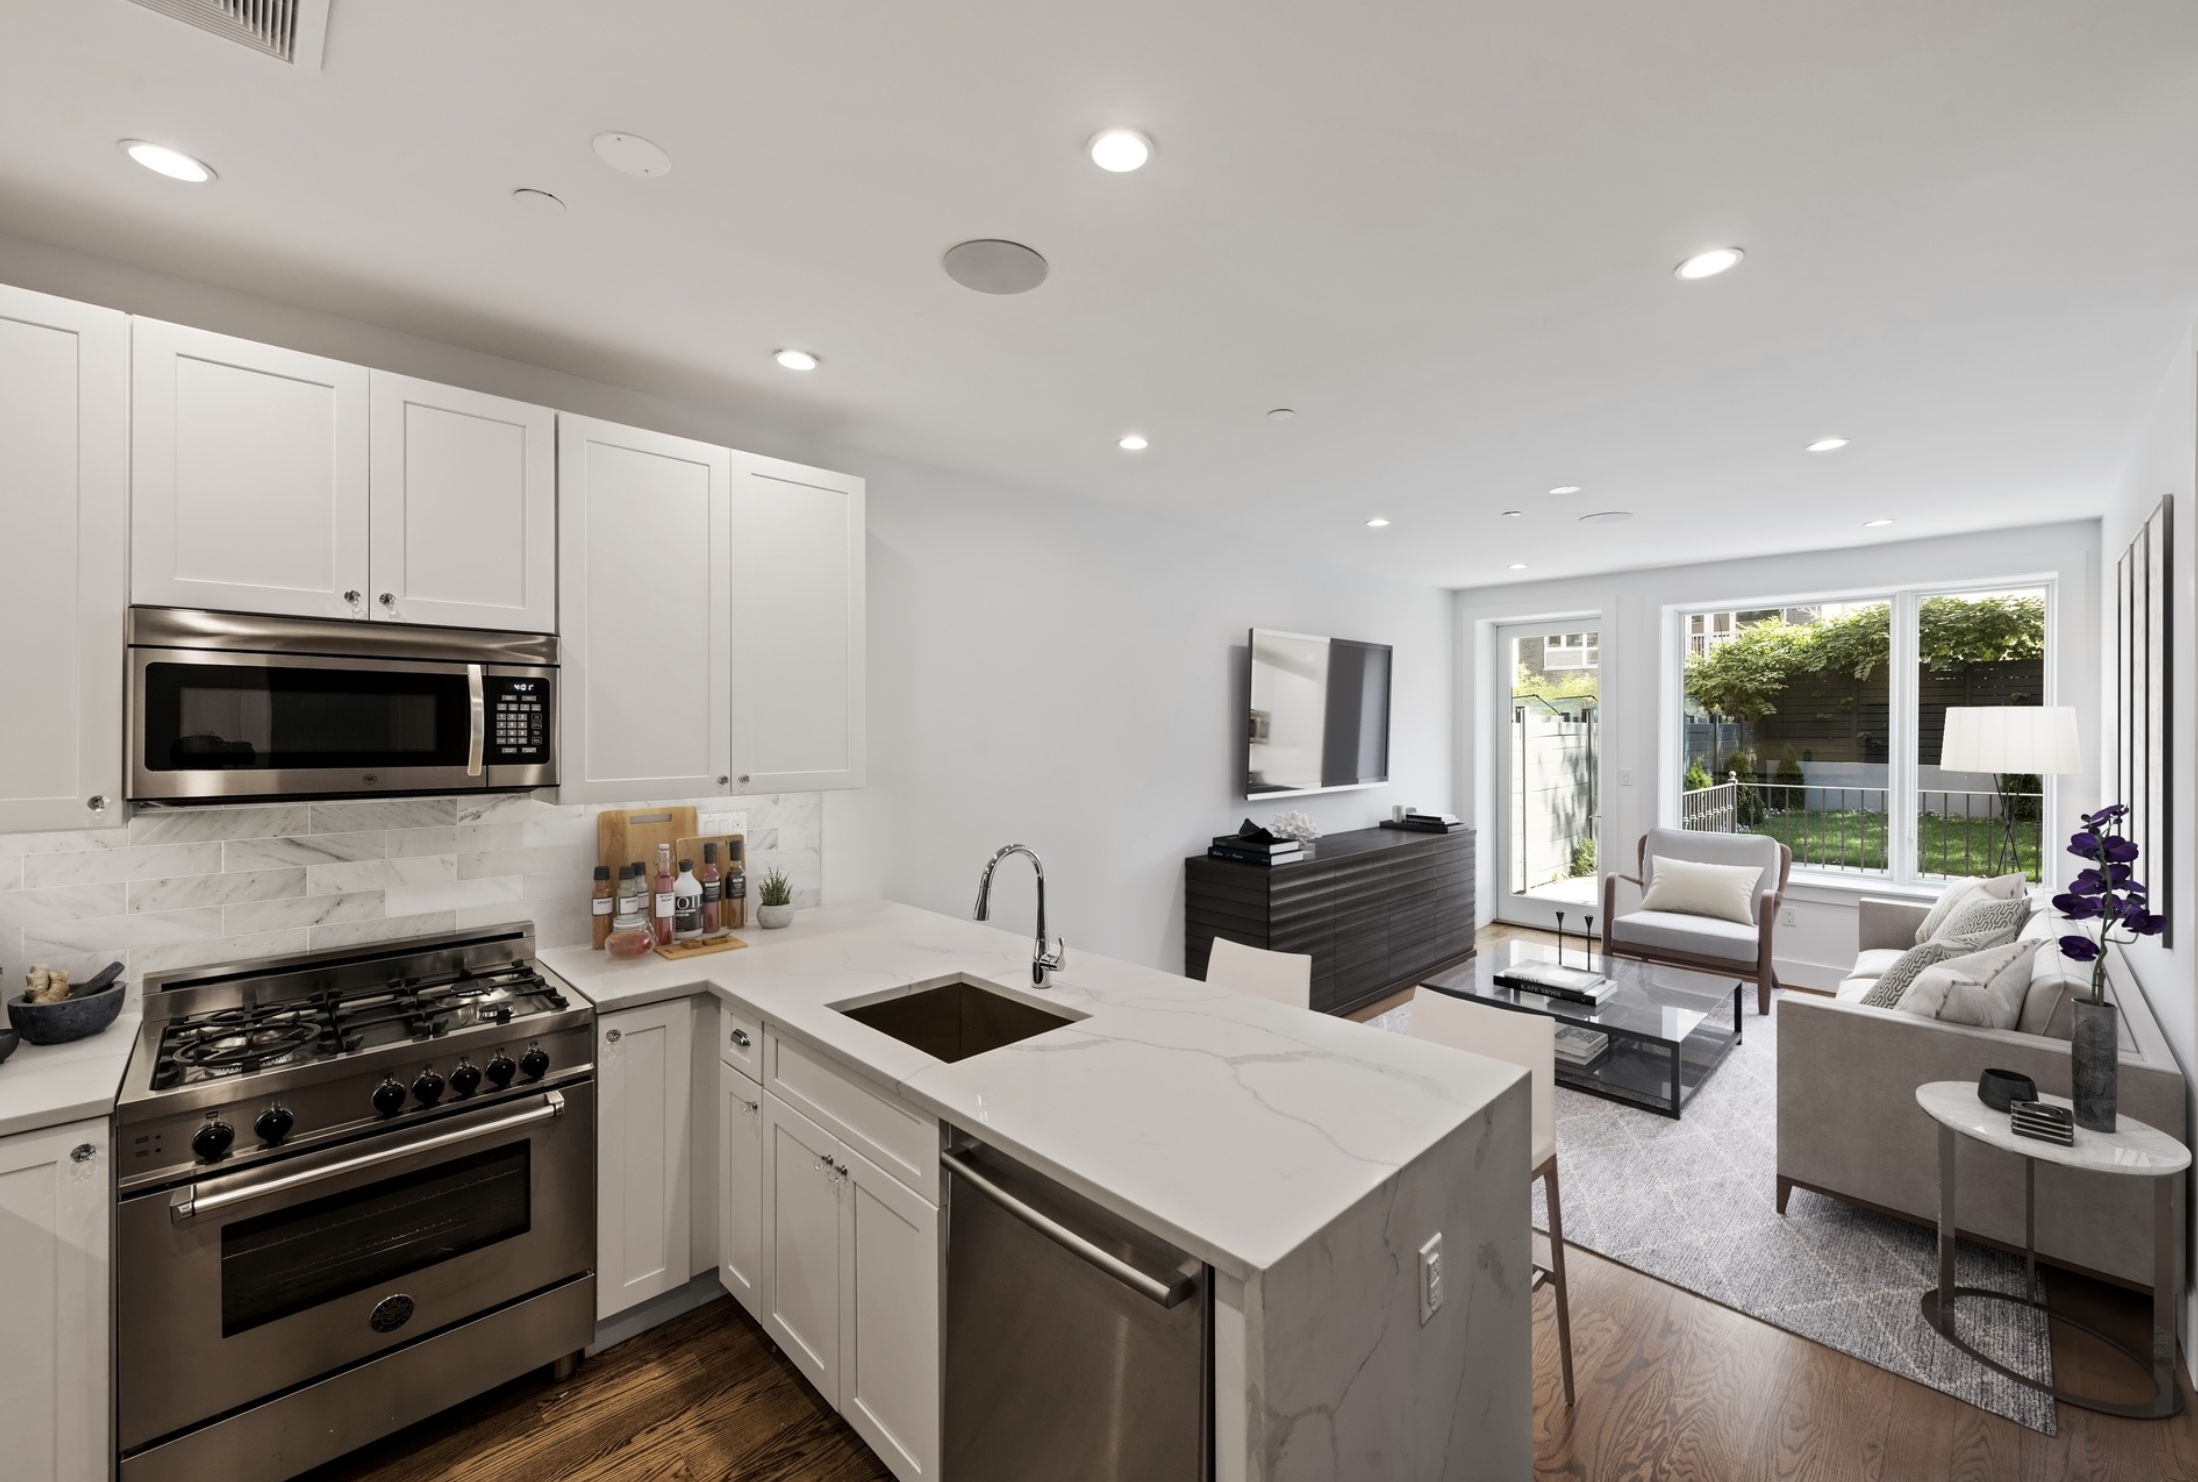 366 GATES AVENUE, 1B - $1,099,000 // 2 Beds // 2 Baths // 1,174 SQFTAn oversized duplex condo situated in a prime area of Bedford-Stuyvesant. The unit offers a luxurious blend of elegant finishes and natural light. Features include gorgeous white oak hardwood floors, central heating and cooling, a video intercom system, airy ceilings, and fully integrated surround-sound speakers.